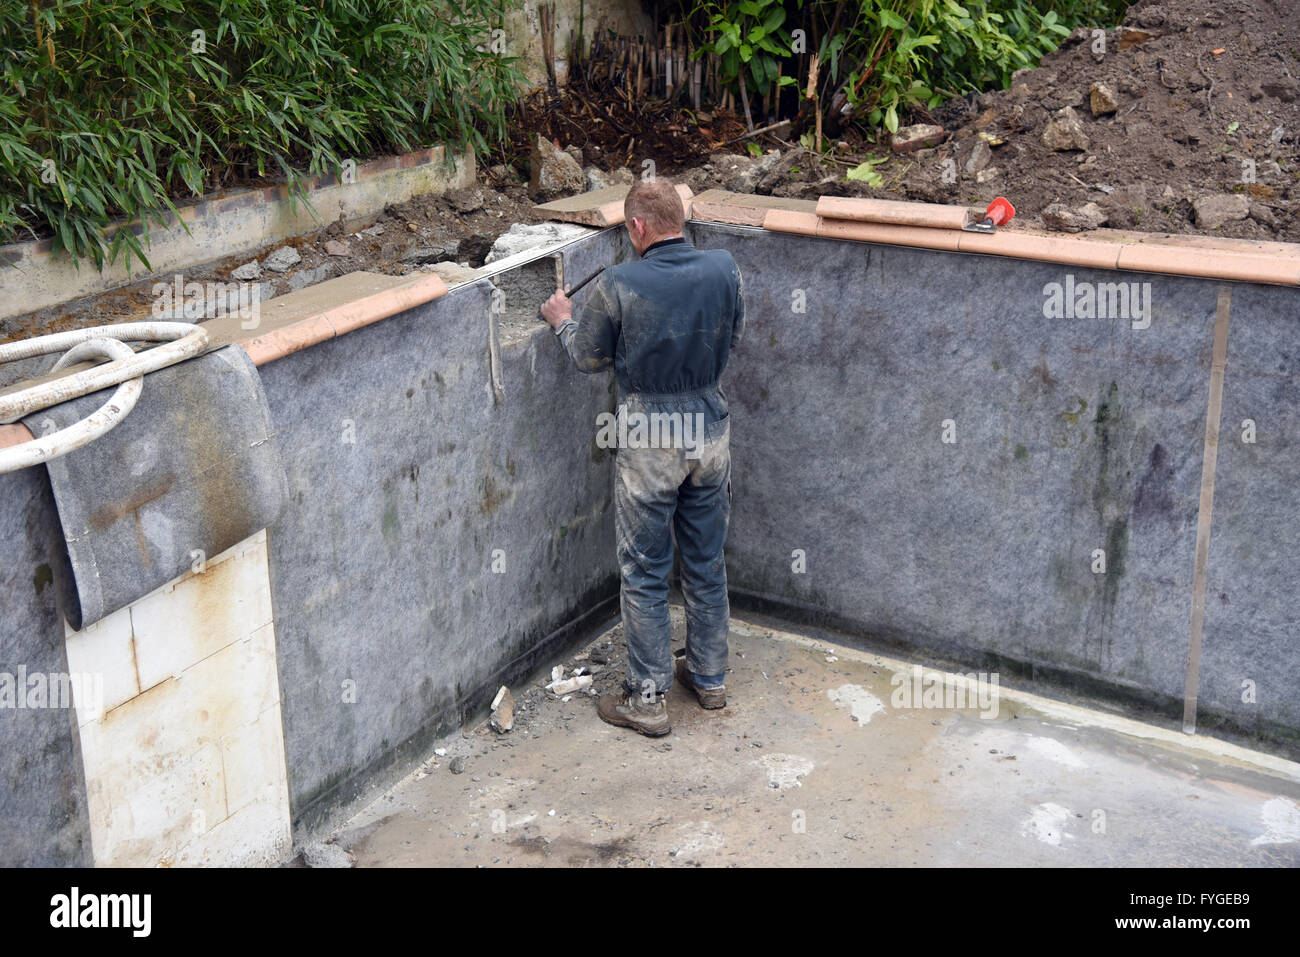 Swmming pool repair new skimmer  and liner - Stock Image